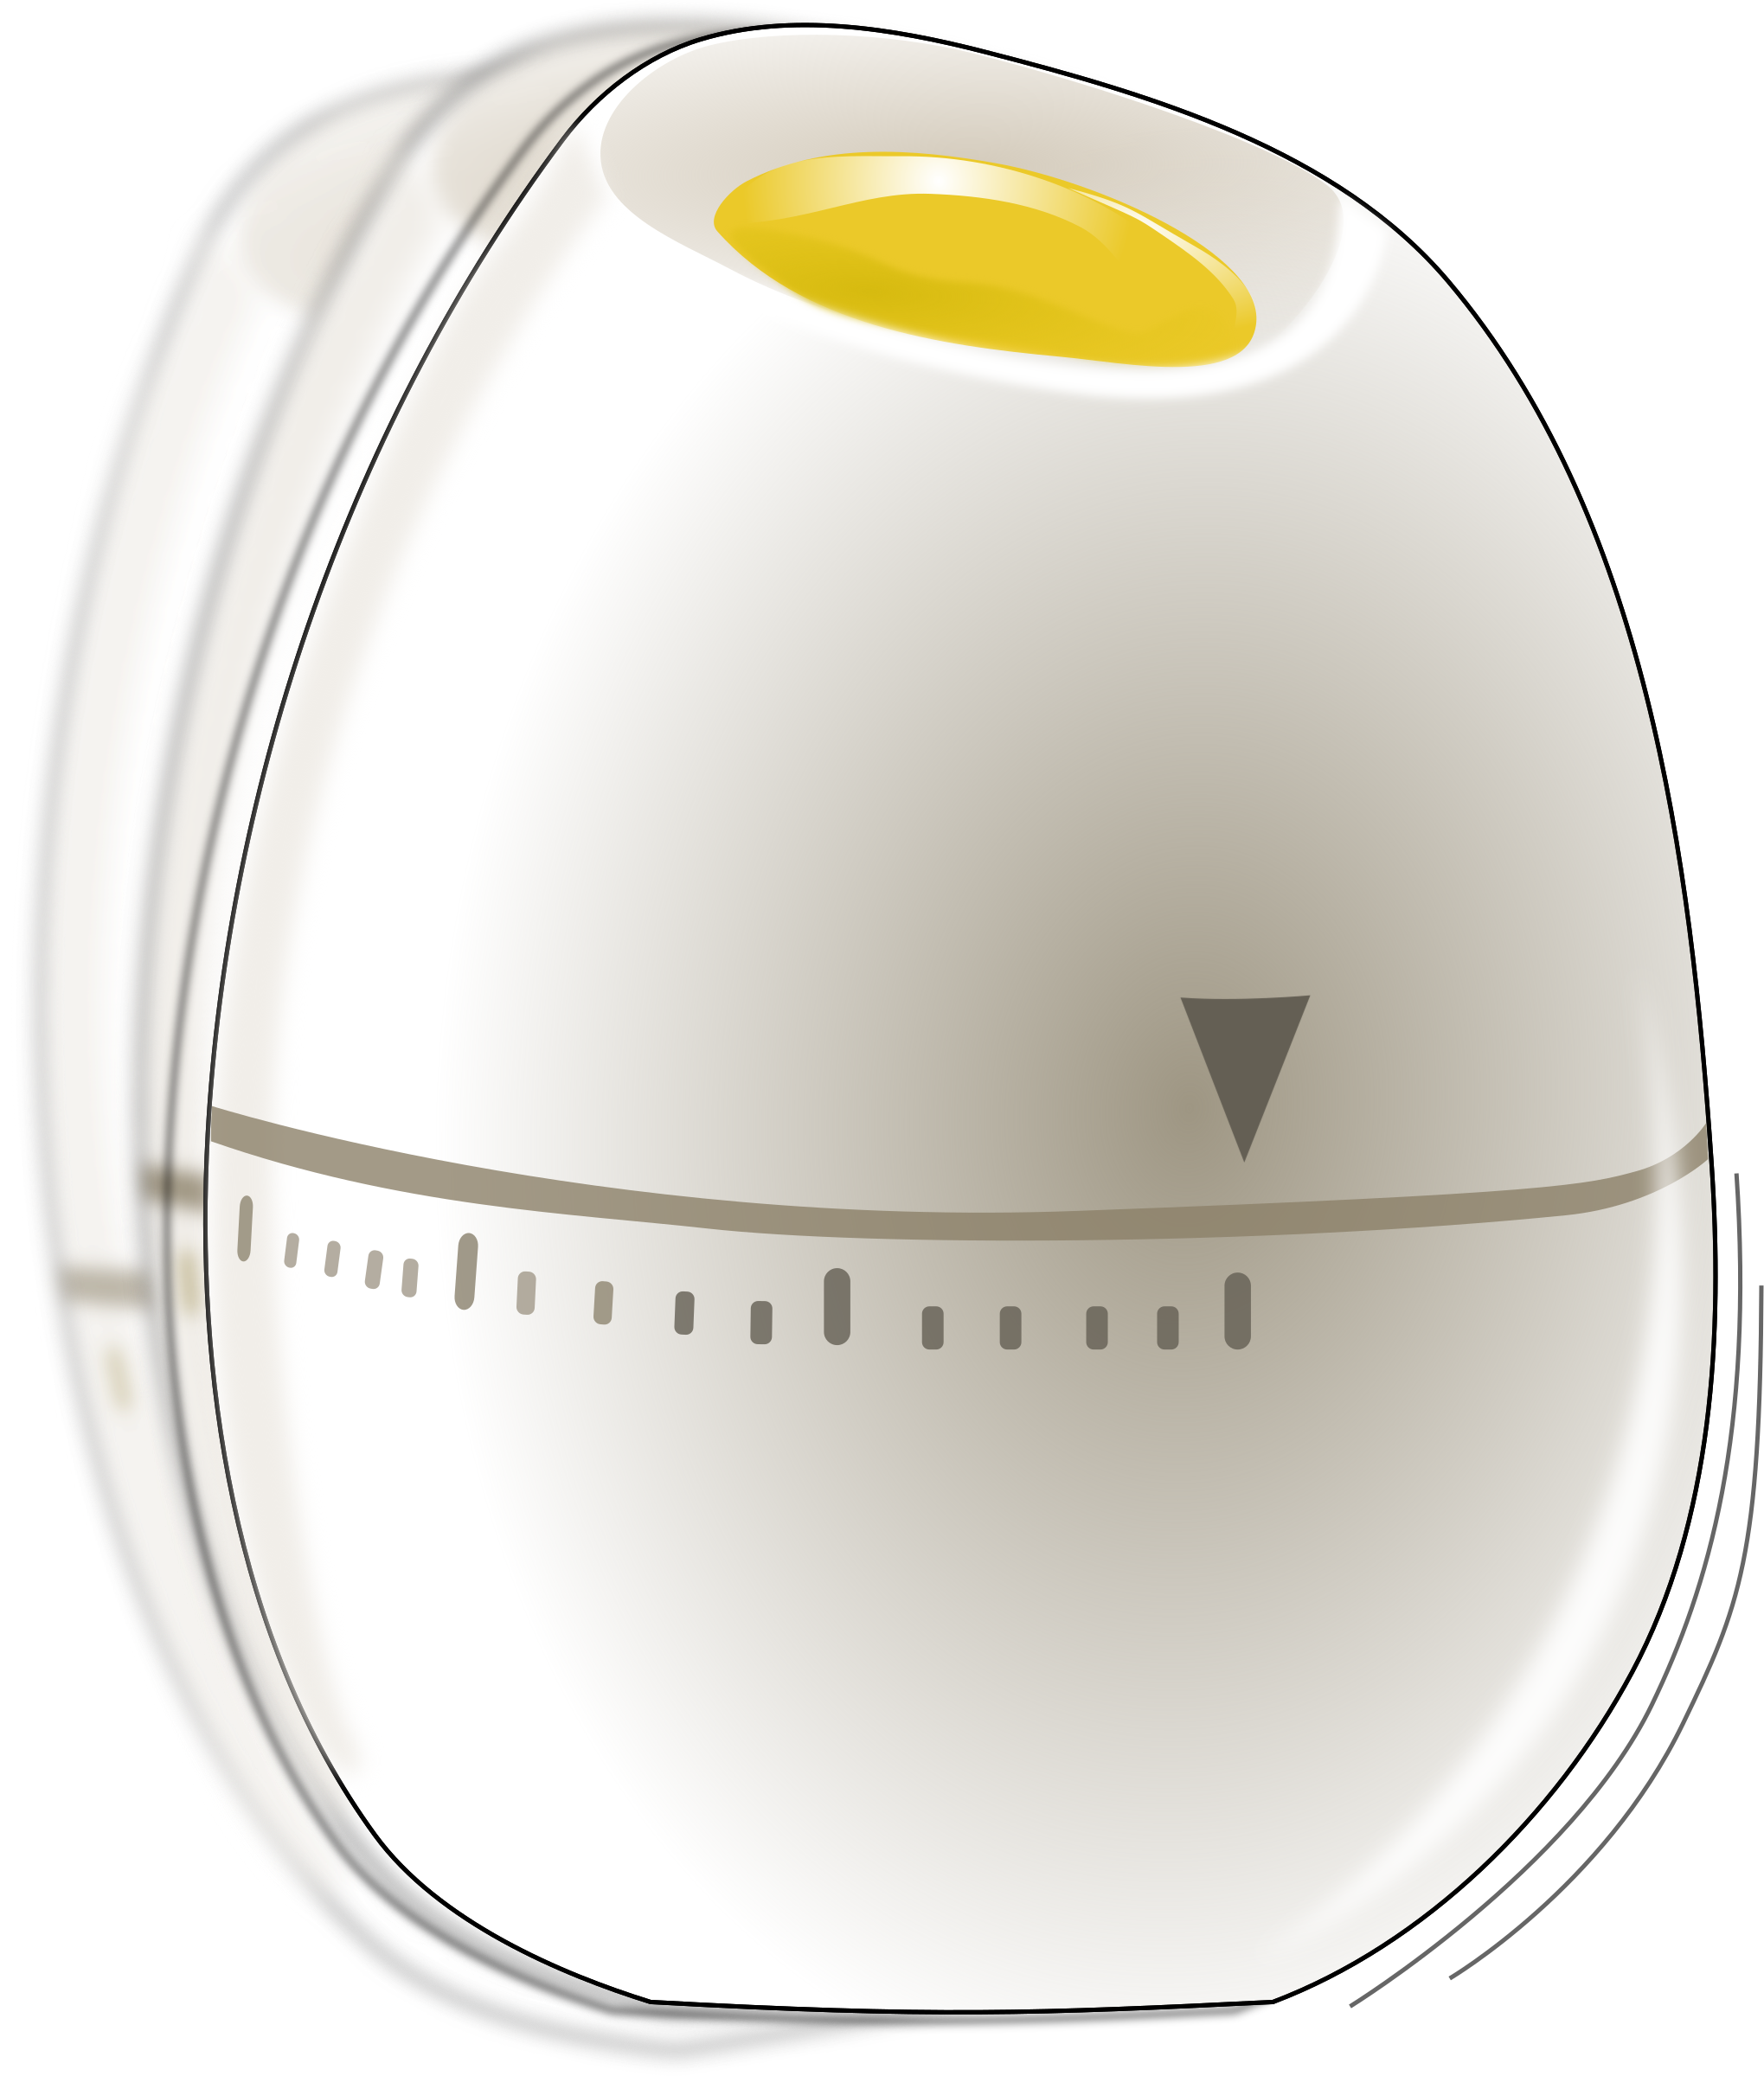 Shaking egg timer by Eggib